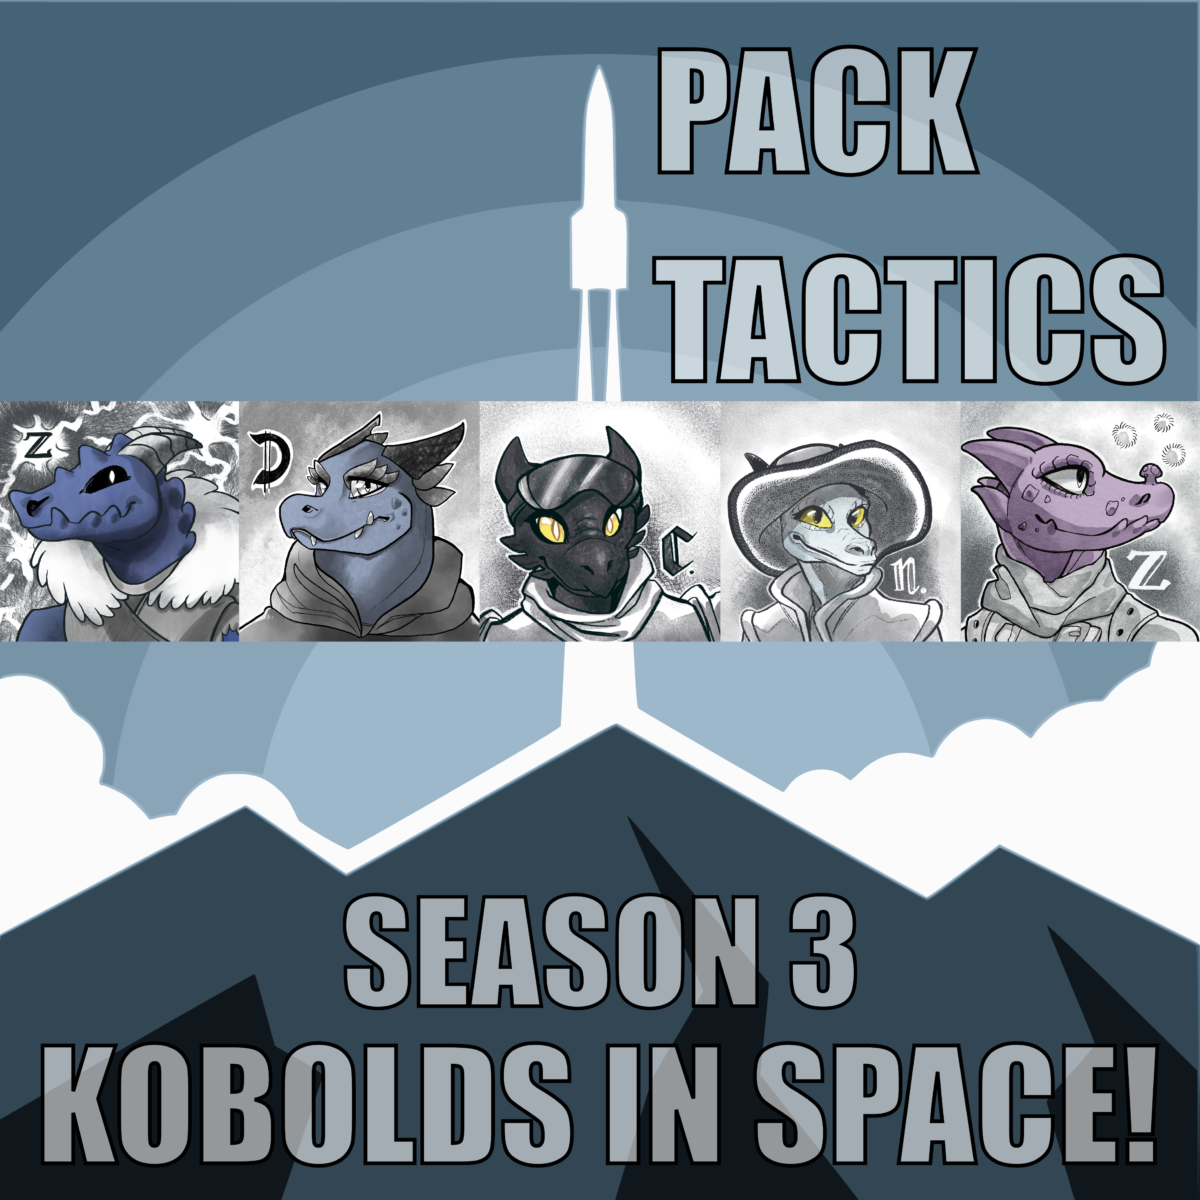 Pack Tactics S3 Ep 16: It's High Moon (End of Arc 1)